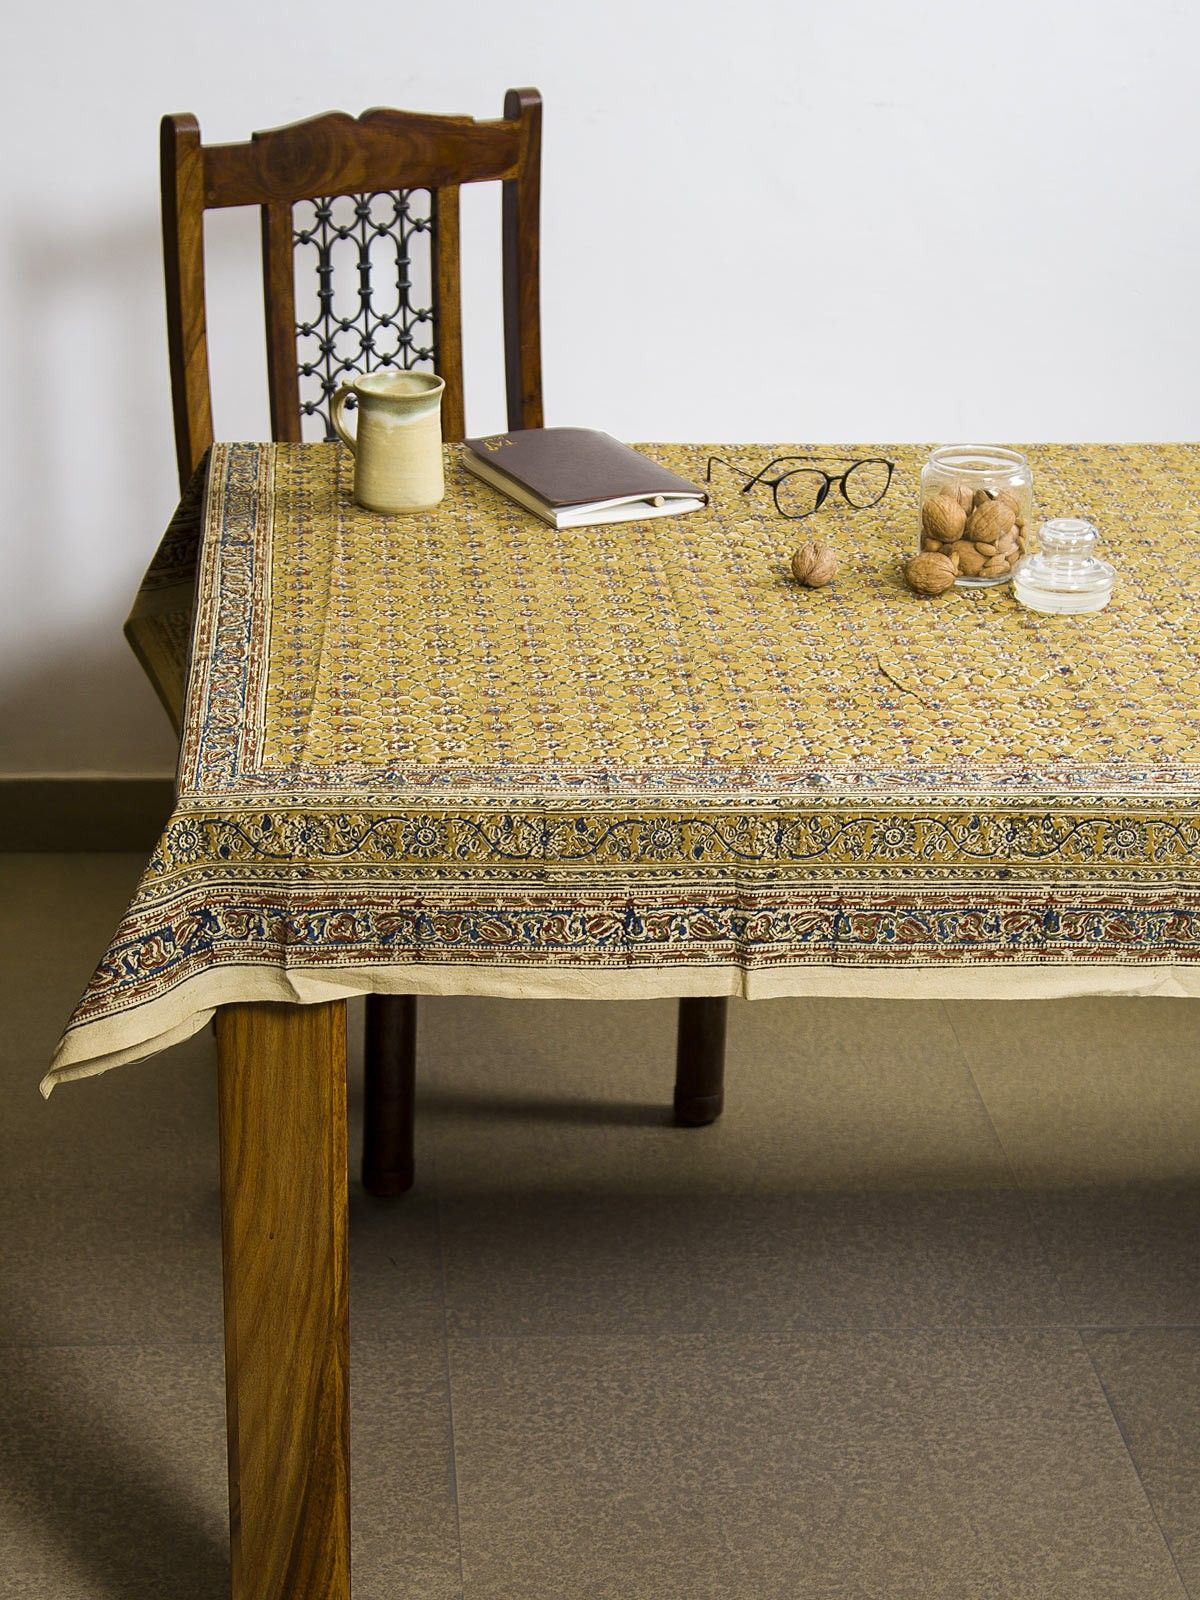 Dijon Vayati Kalamkari 4 seater table cover